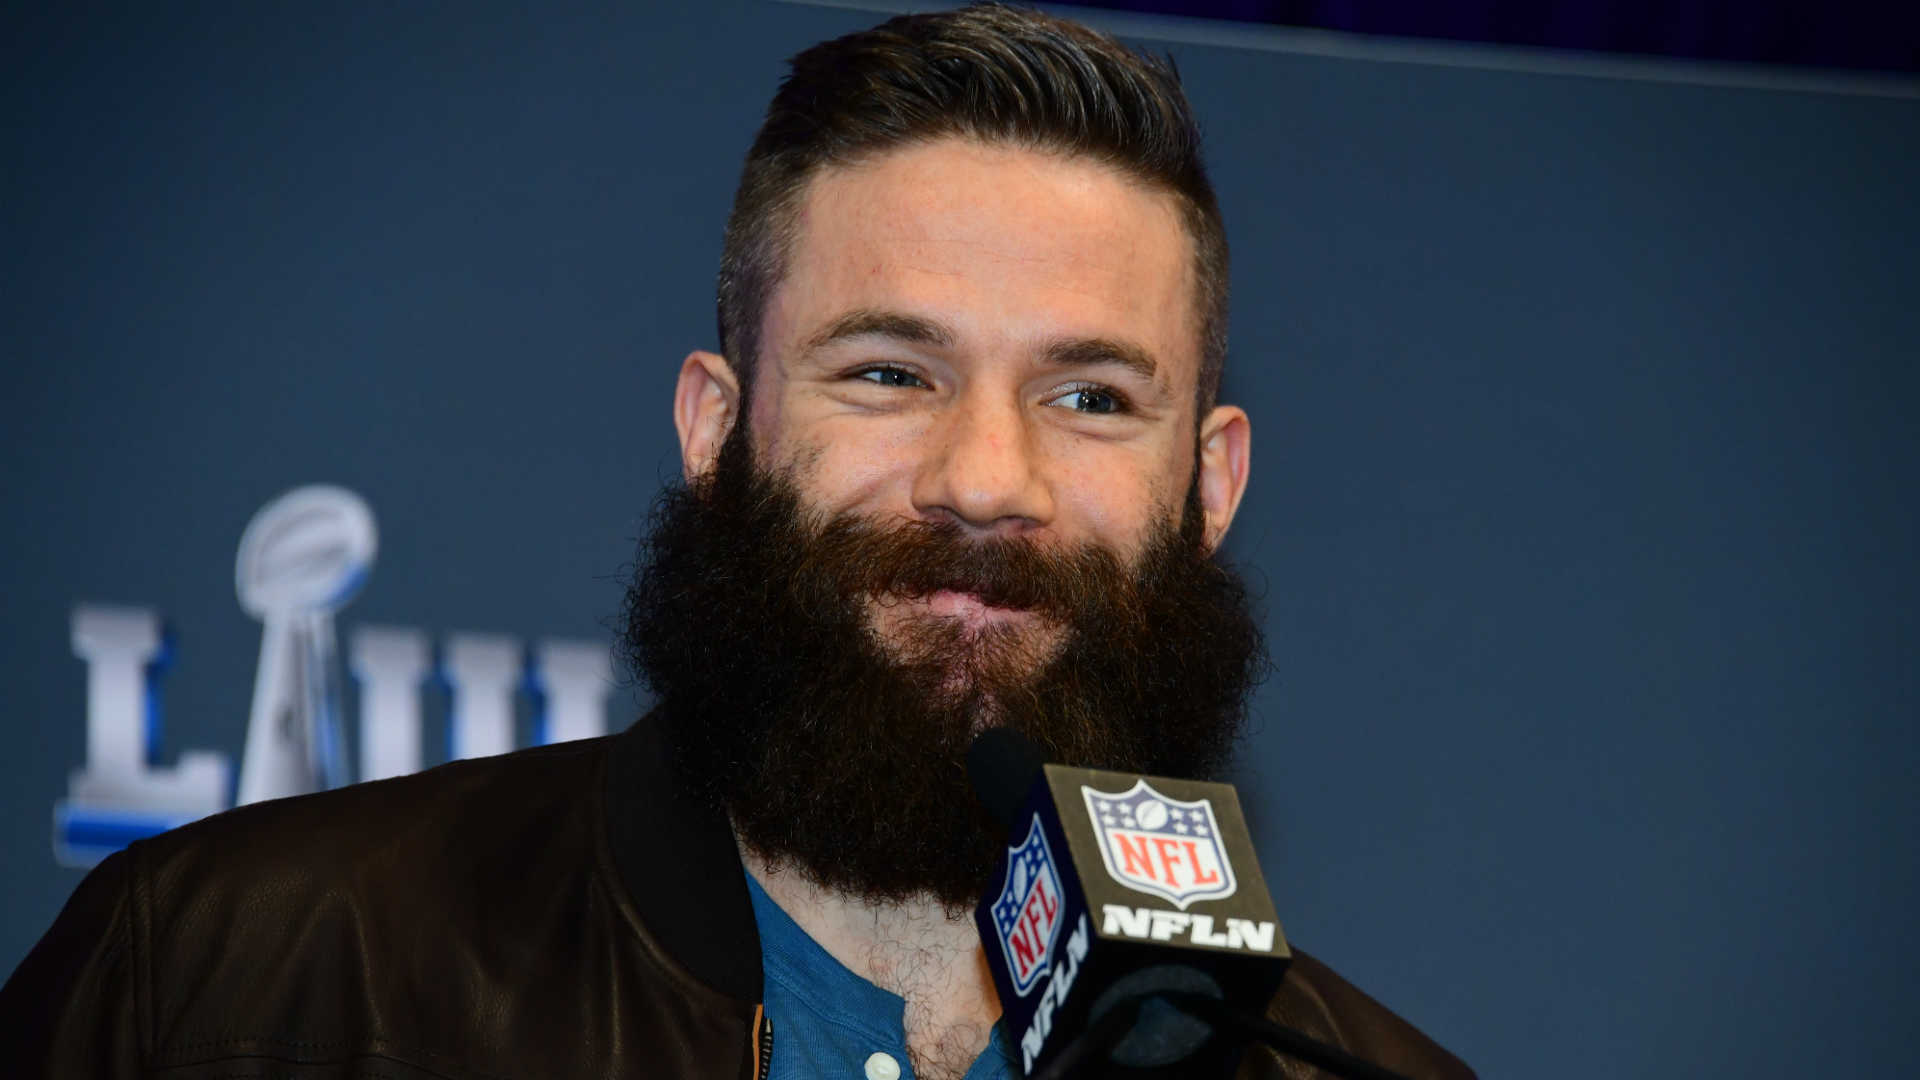 Julian Edelman's beard is no more after talkshow host Ellen DeGeneres shaved the Super Bowl LIII MVP's facial hair off for charity.